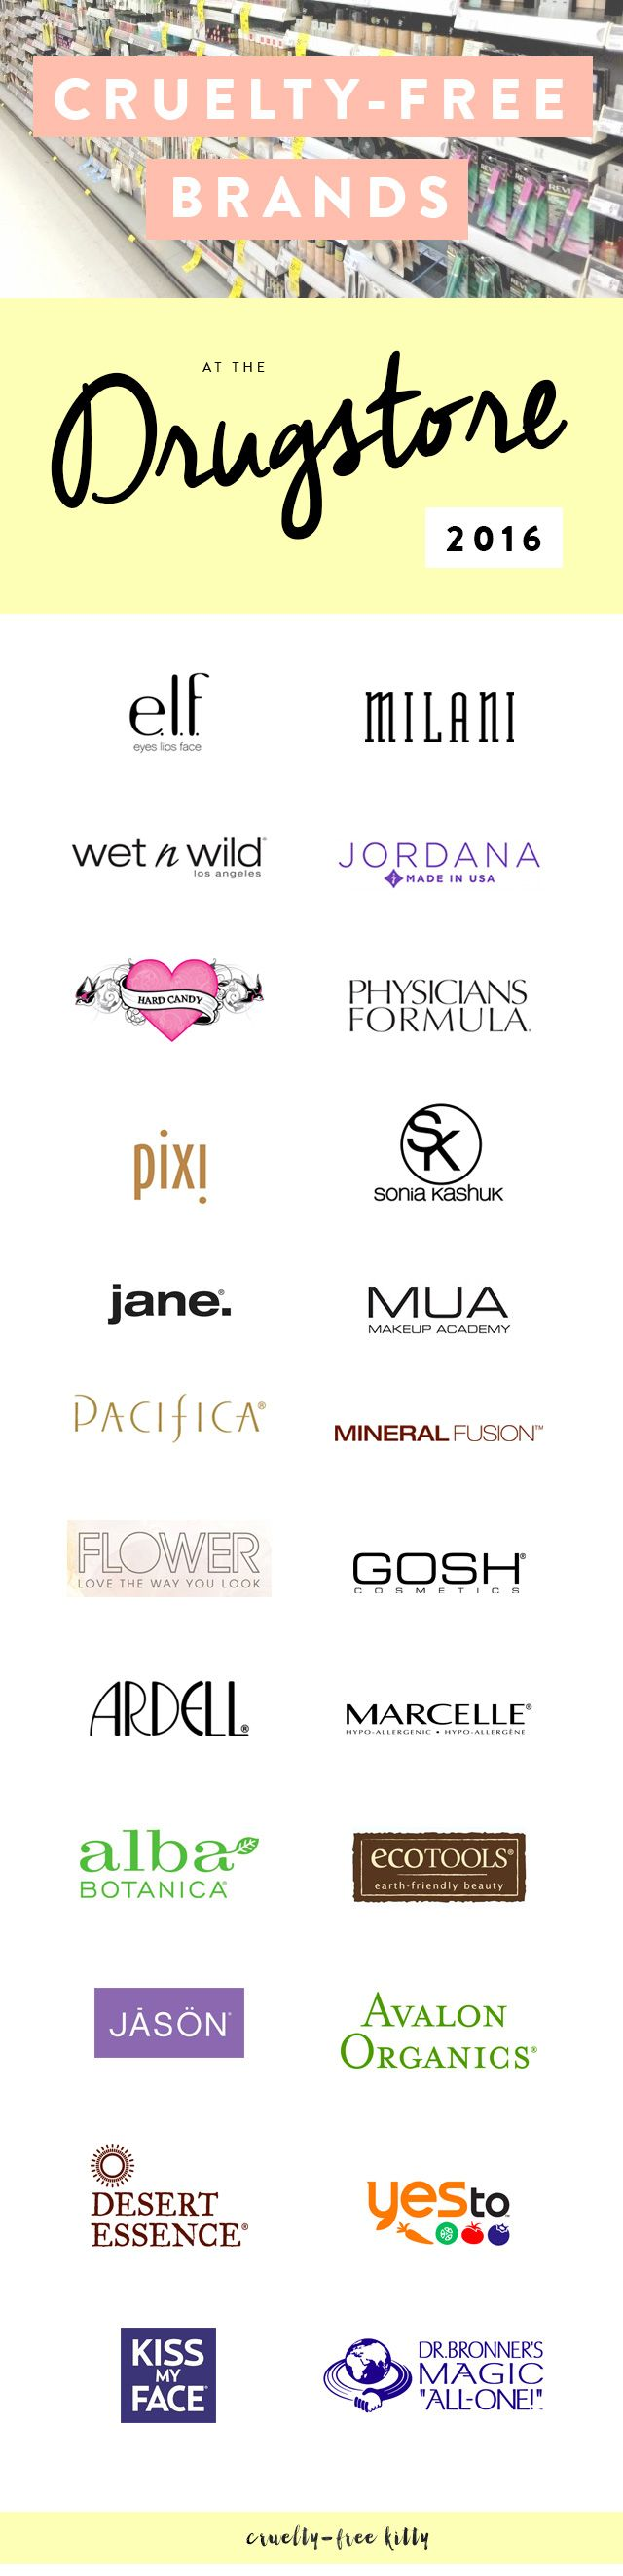 A ton of affordable cruelty-free brands! #crueltyfree